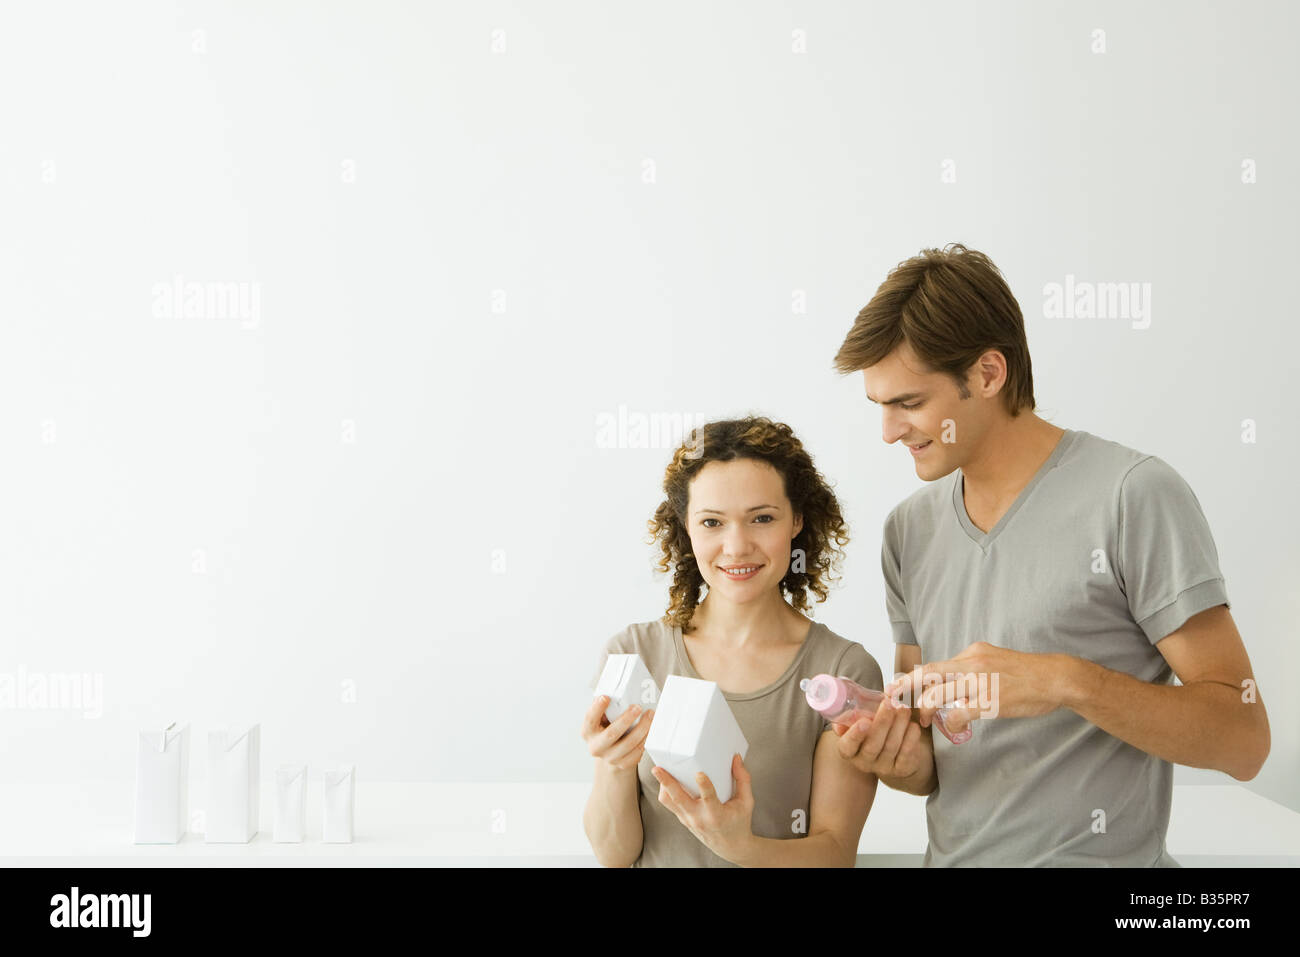 New parents looking at milk cartons, man holding baby bottle, woman smiling at camera - Stock Image